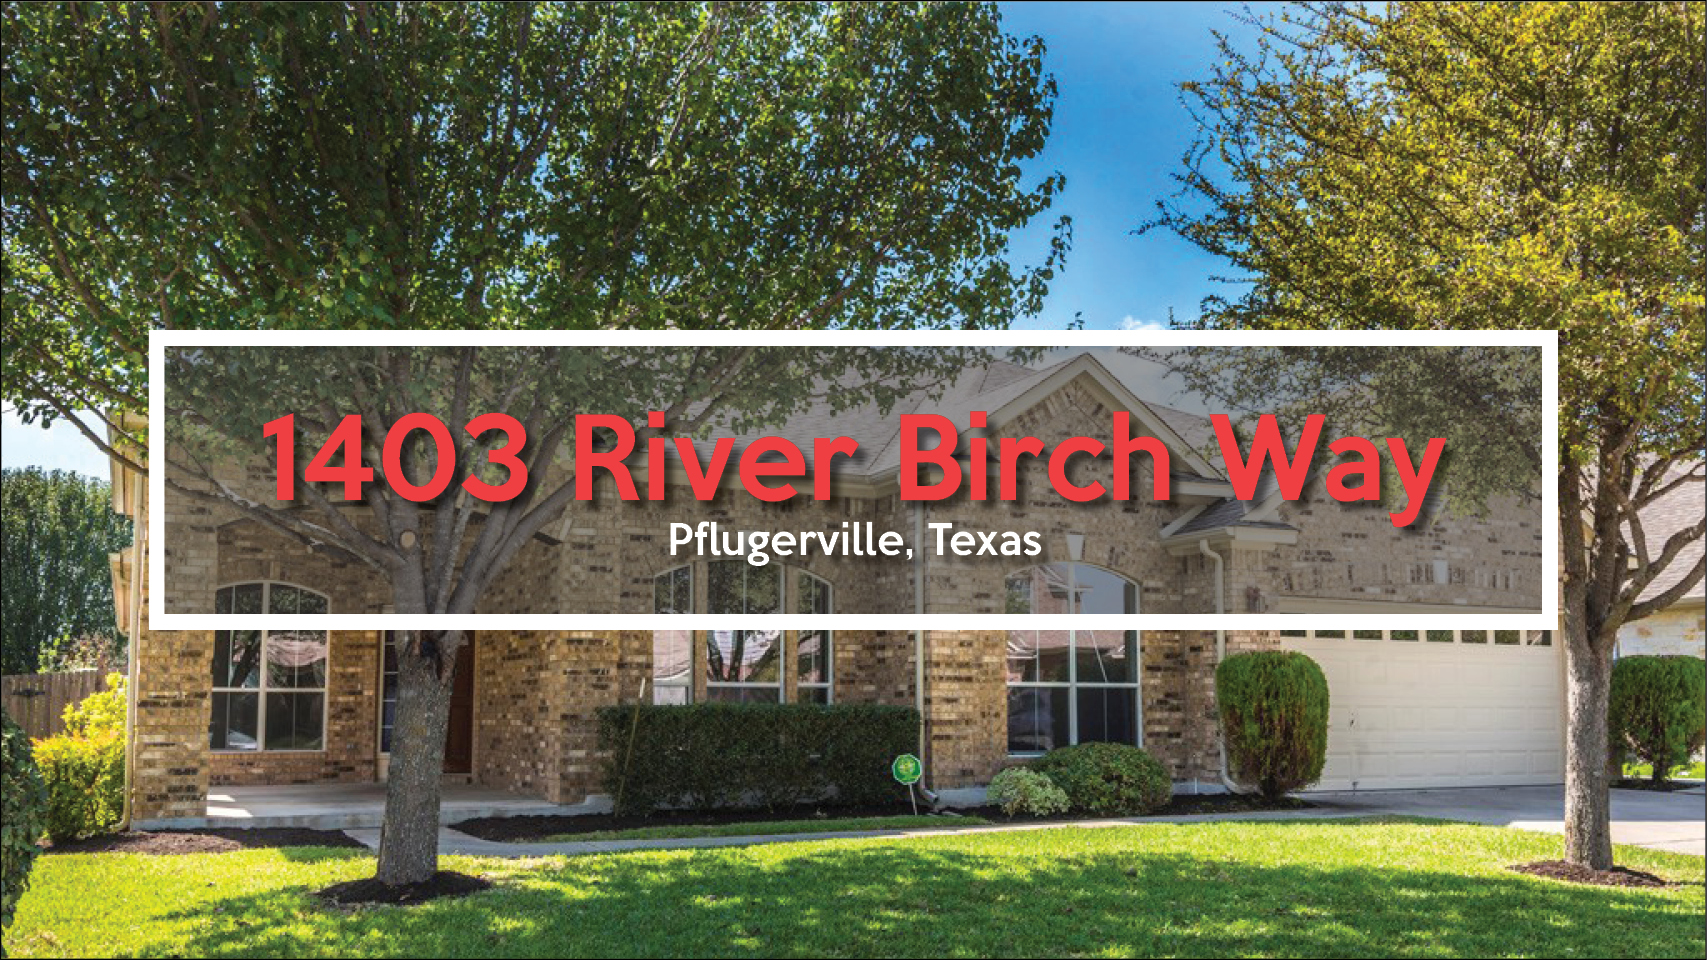 Featured: 1403 River Birch Way, Pflugerville